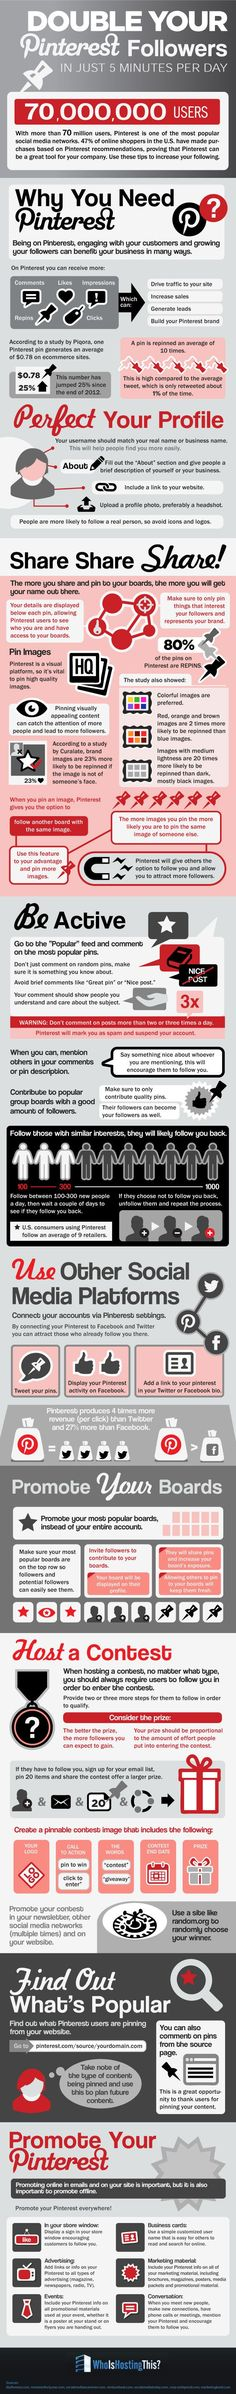 Pinterest is one of today's most important social networks. This #infographic shows you how to increase your #Pinterest followers in just 5 minutes per day.  #socialmedia""